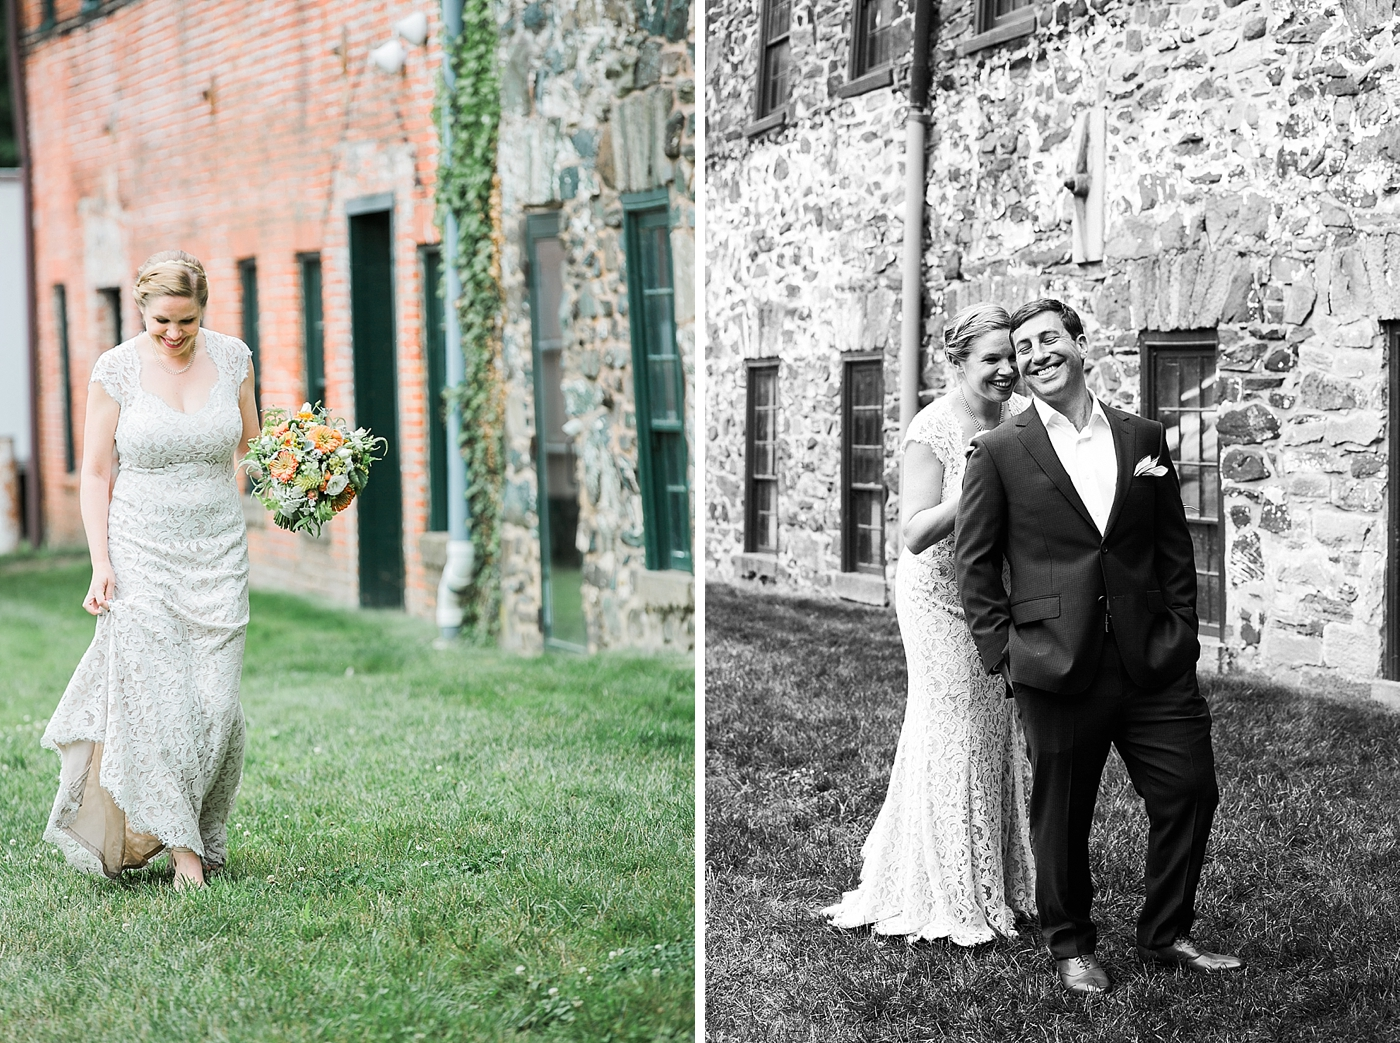 mt-washington-mill-baltimore-wedding-kirsten-marie-photography_1308